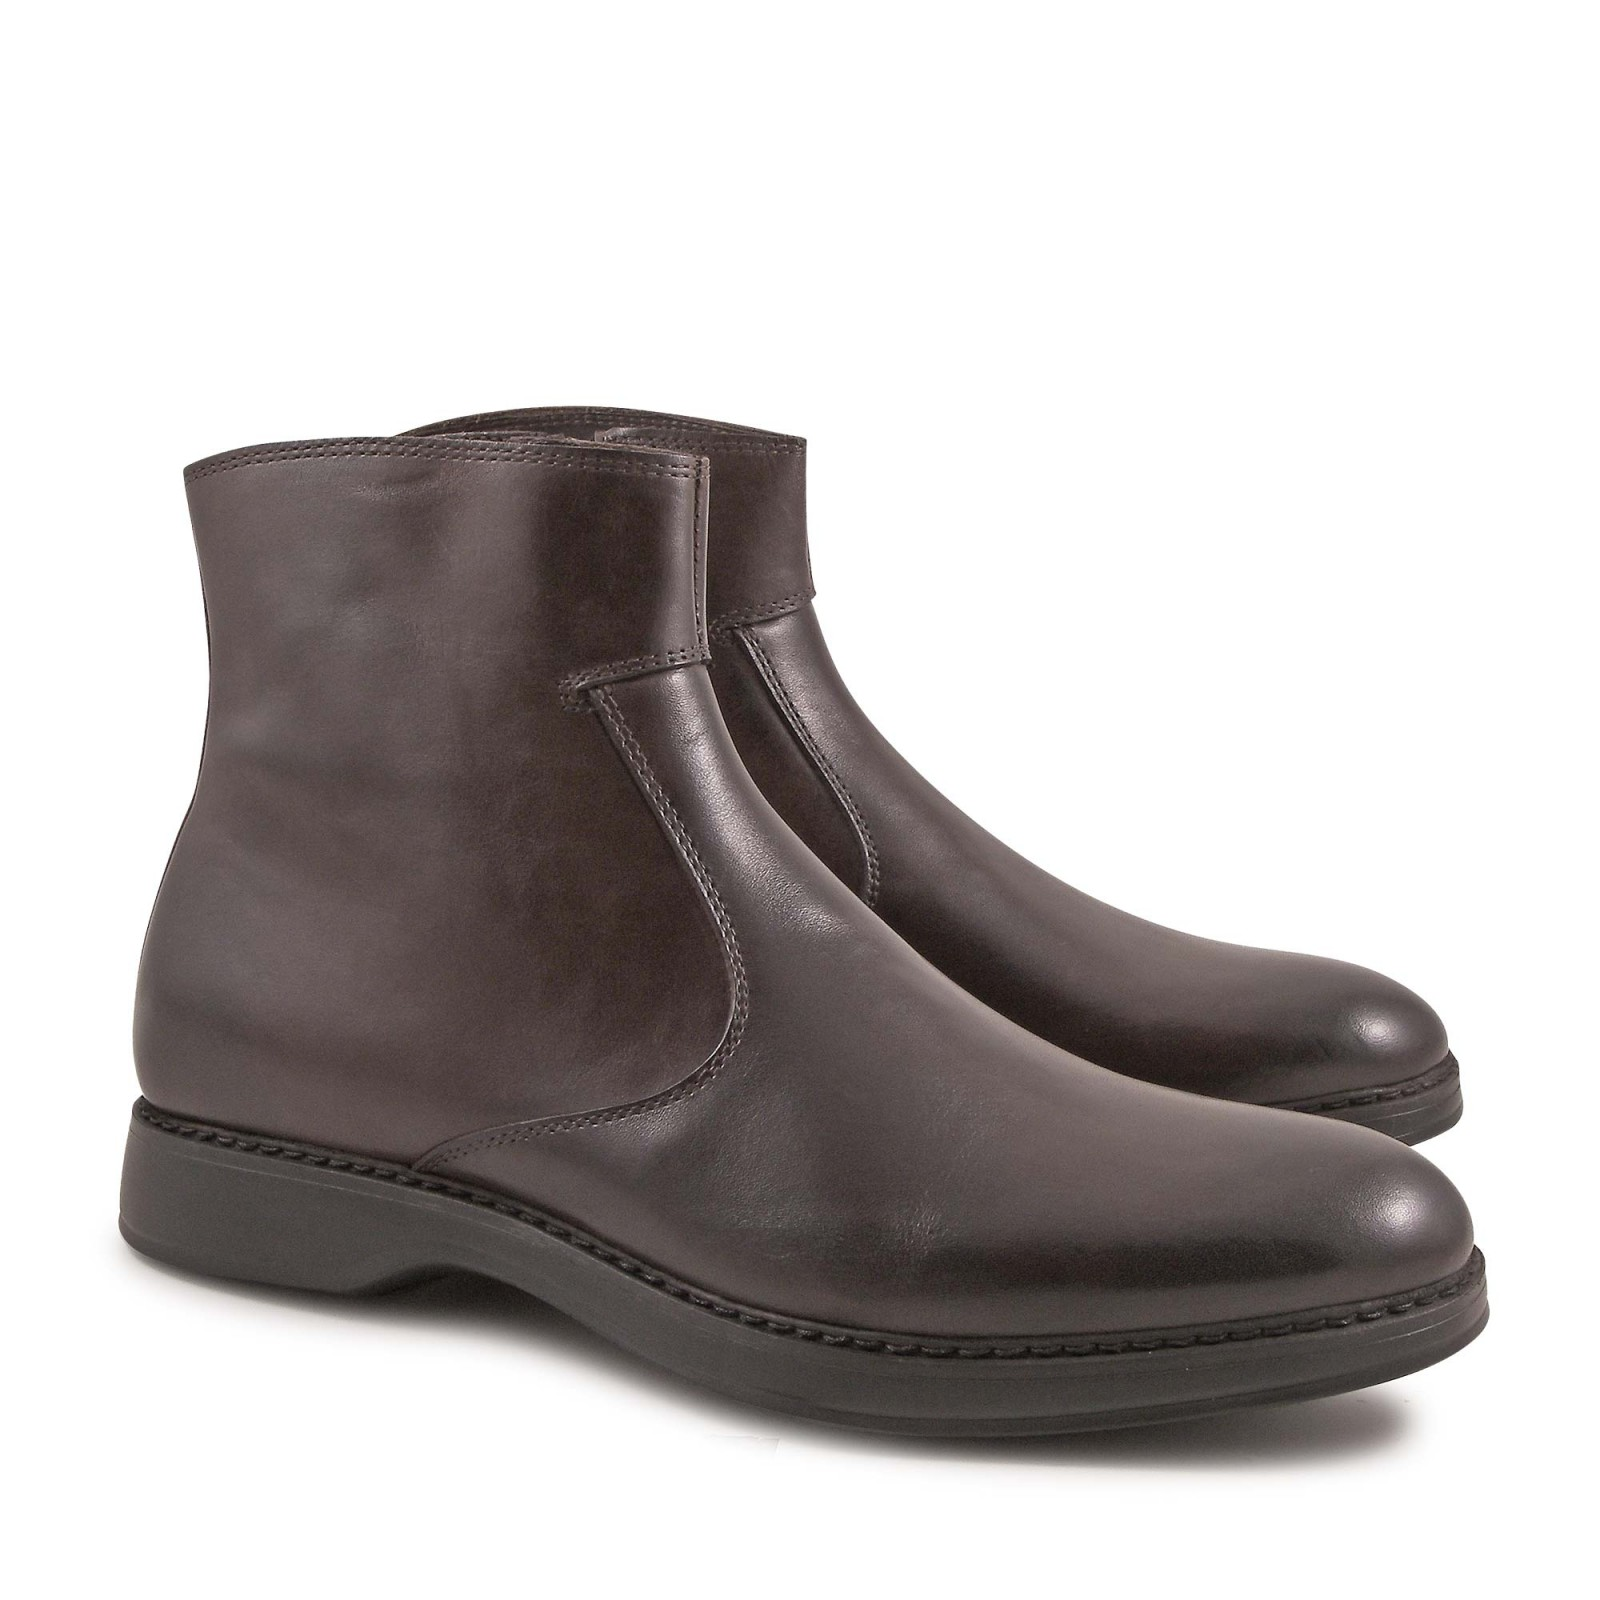 handmade s ankle boots with zip in chocolat calf